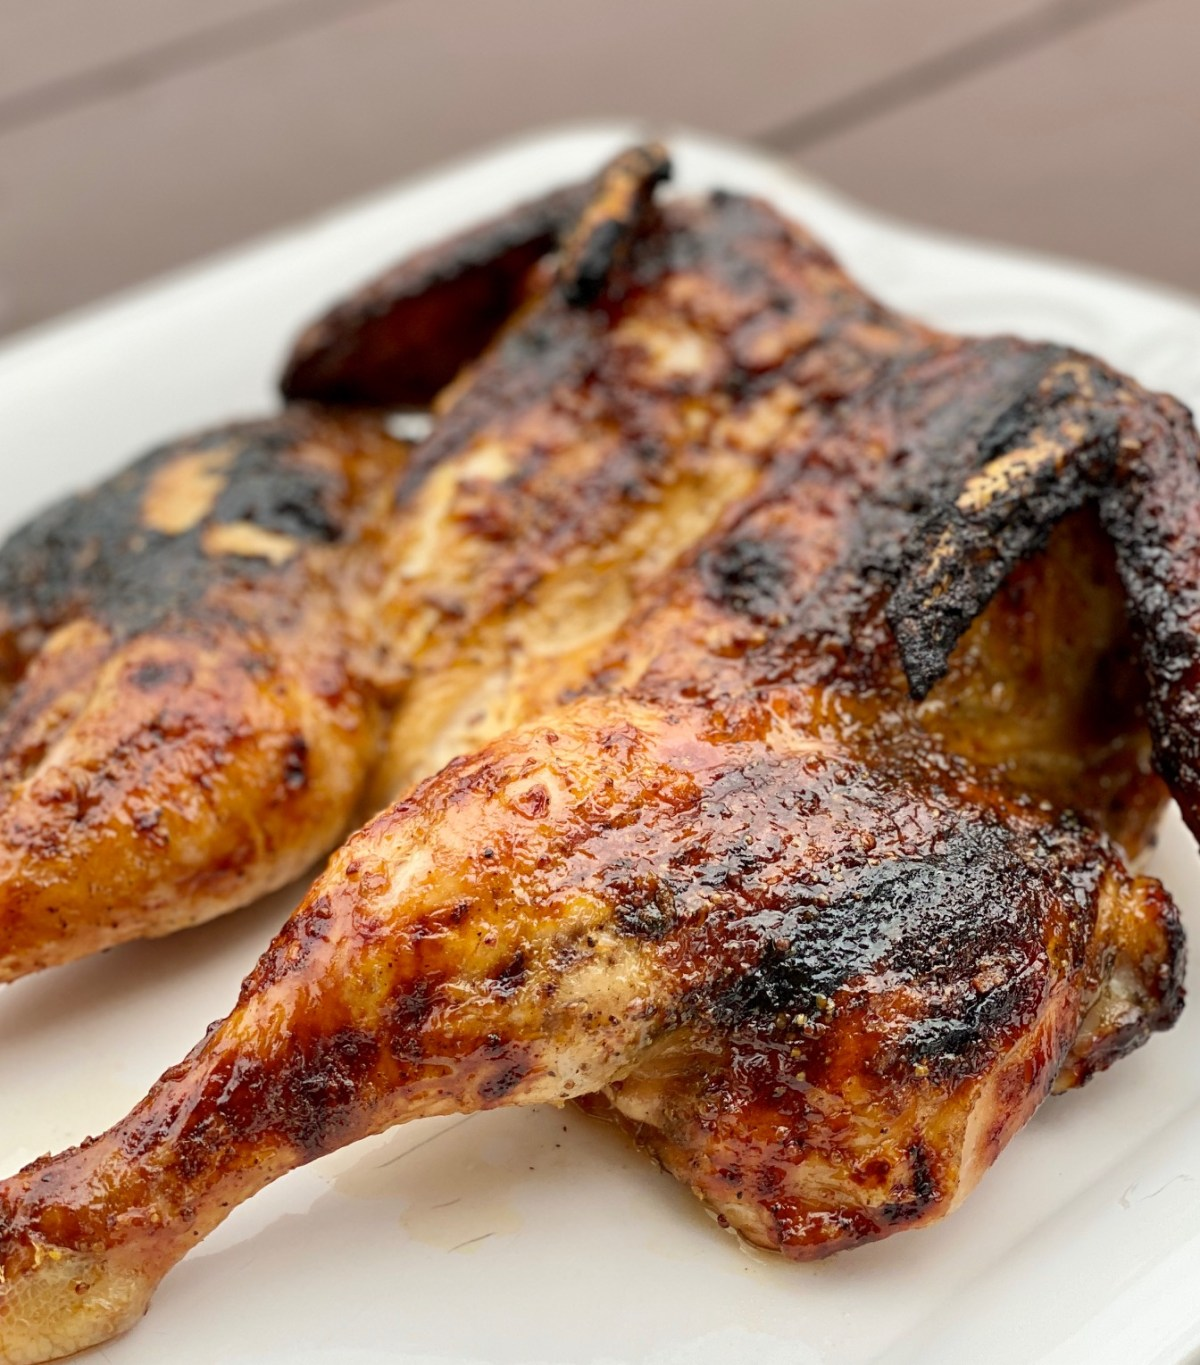 Grilled Spatchcocked Chicken by Happylifeblogspot.com #grilledspatchcockedchicken #spatchcock #spatchcocked #howtospatchcockachicken spatchcockedchicken #grilledchicken #howtogrillawholechicken #grillrecipes #dinnerrecipes #chickenrecipes #chickenonthegrill